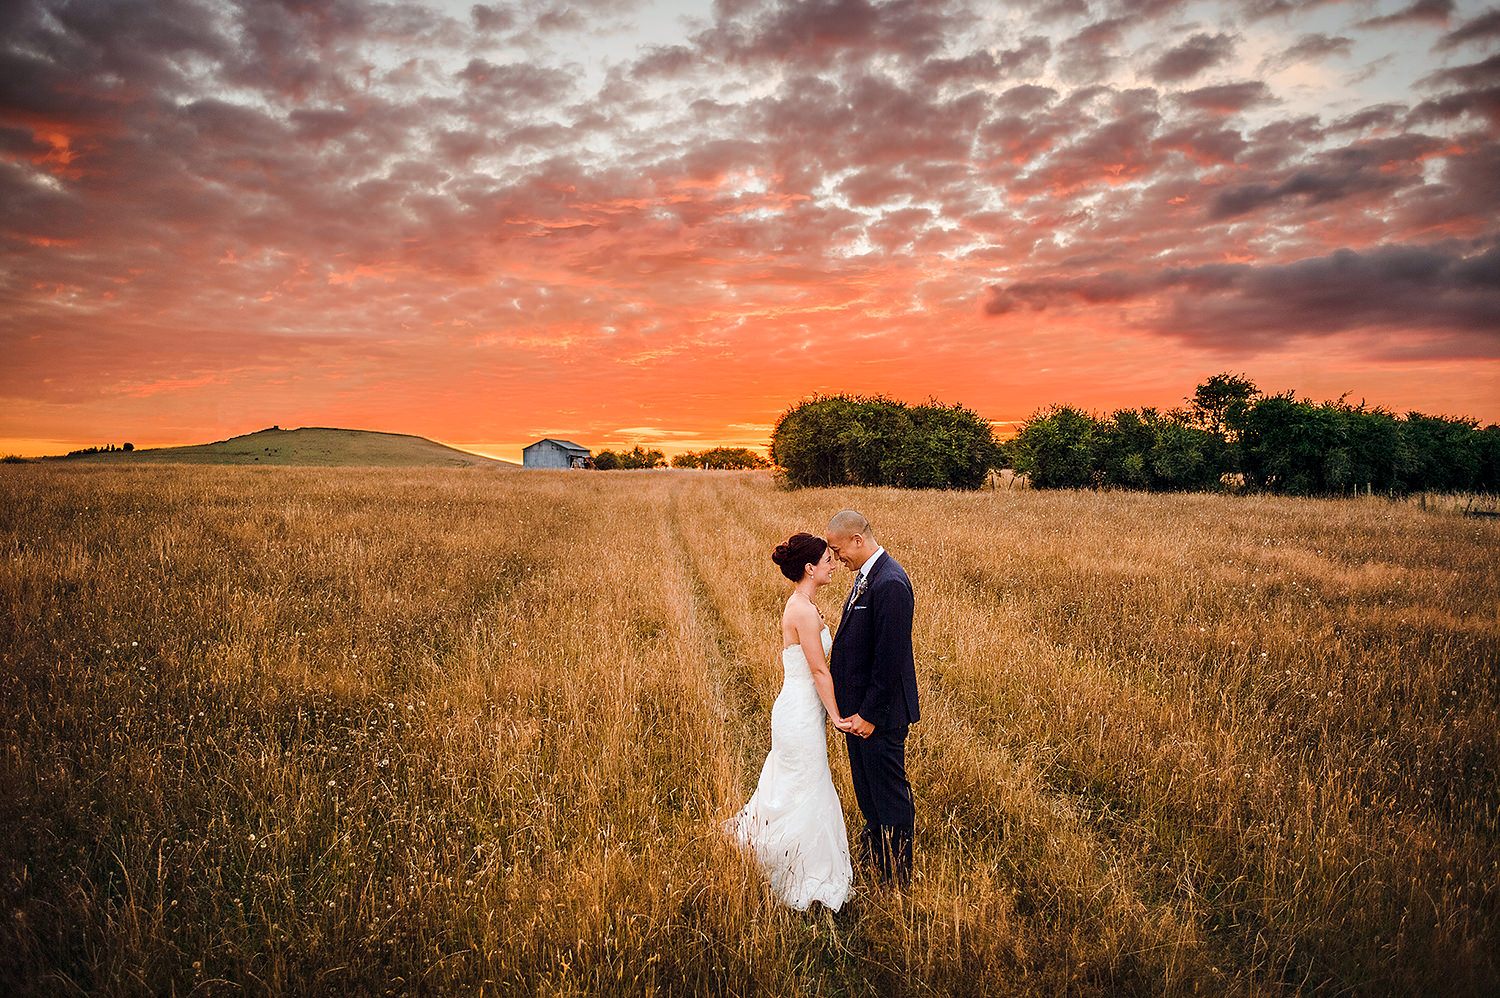 Wedding Couple in field red sunset Bracu.jpg